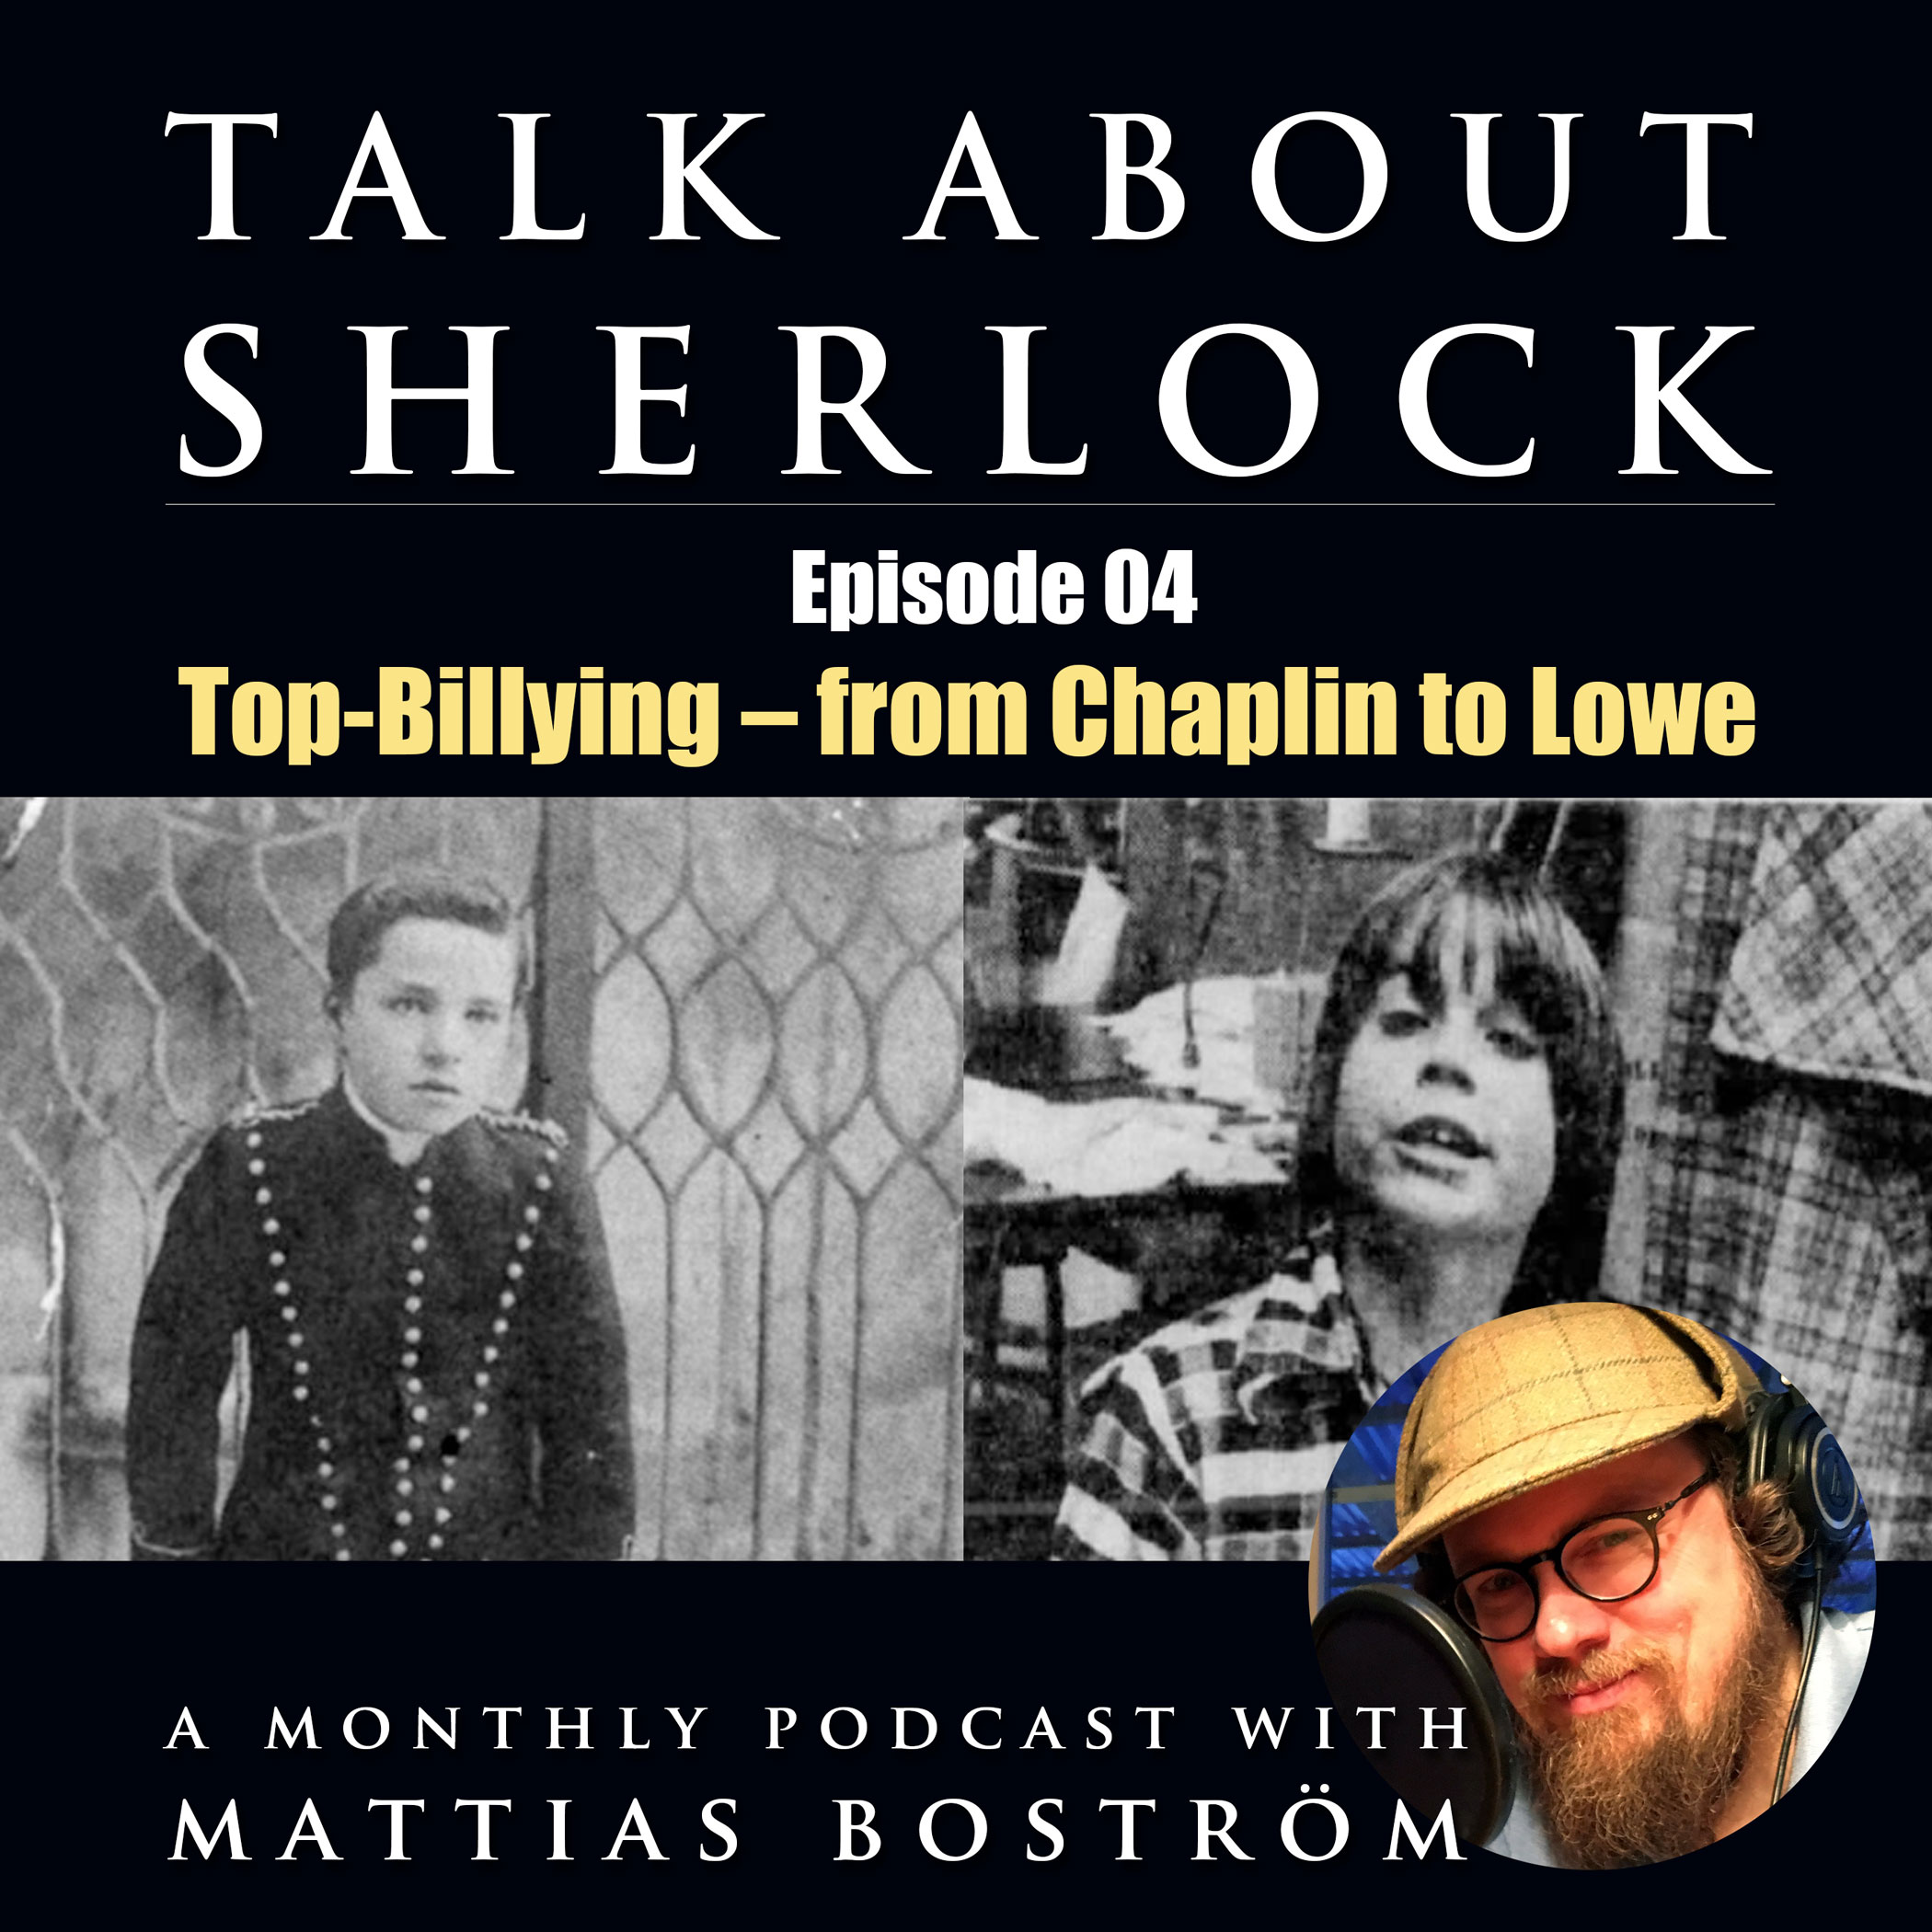 Episode 04: Top-Billying – from Chaplin to Lowe